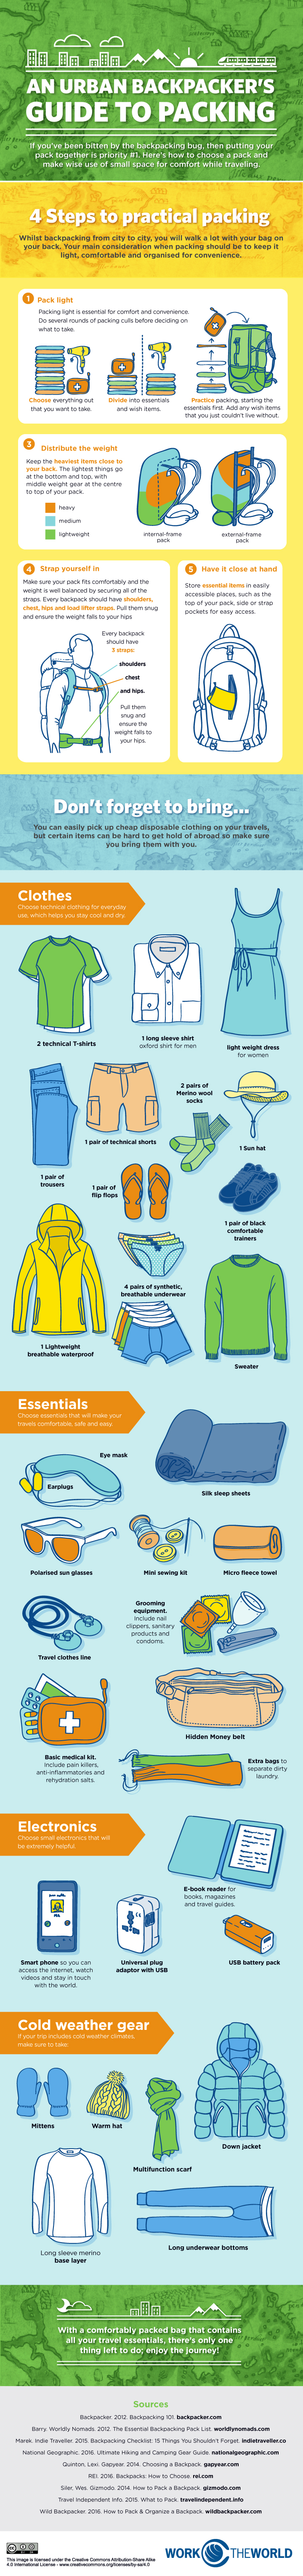 A Backpacker's Guide to Packing